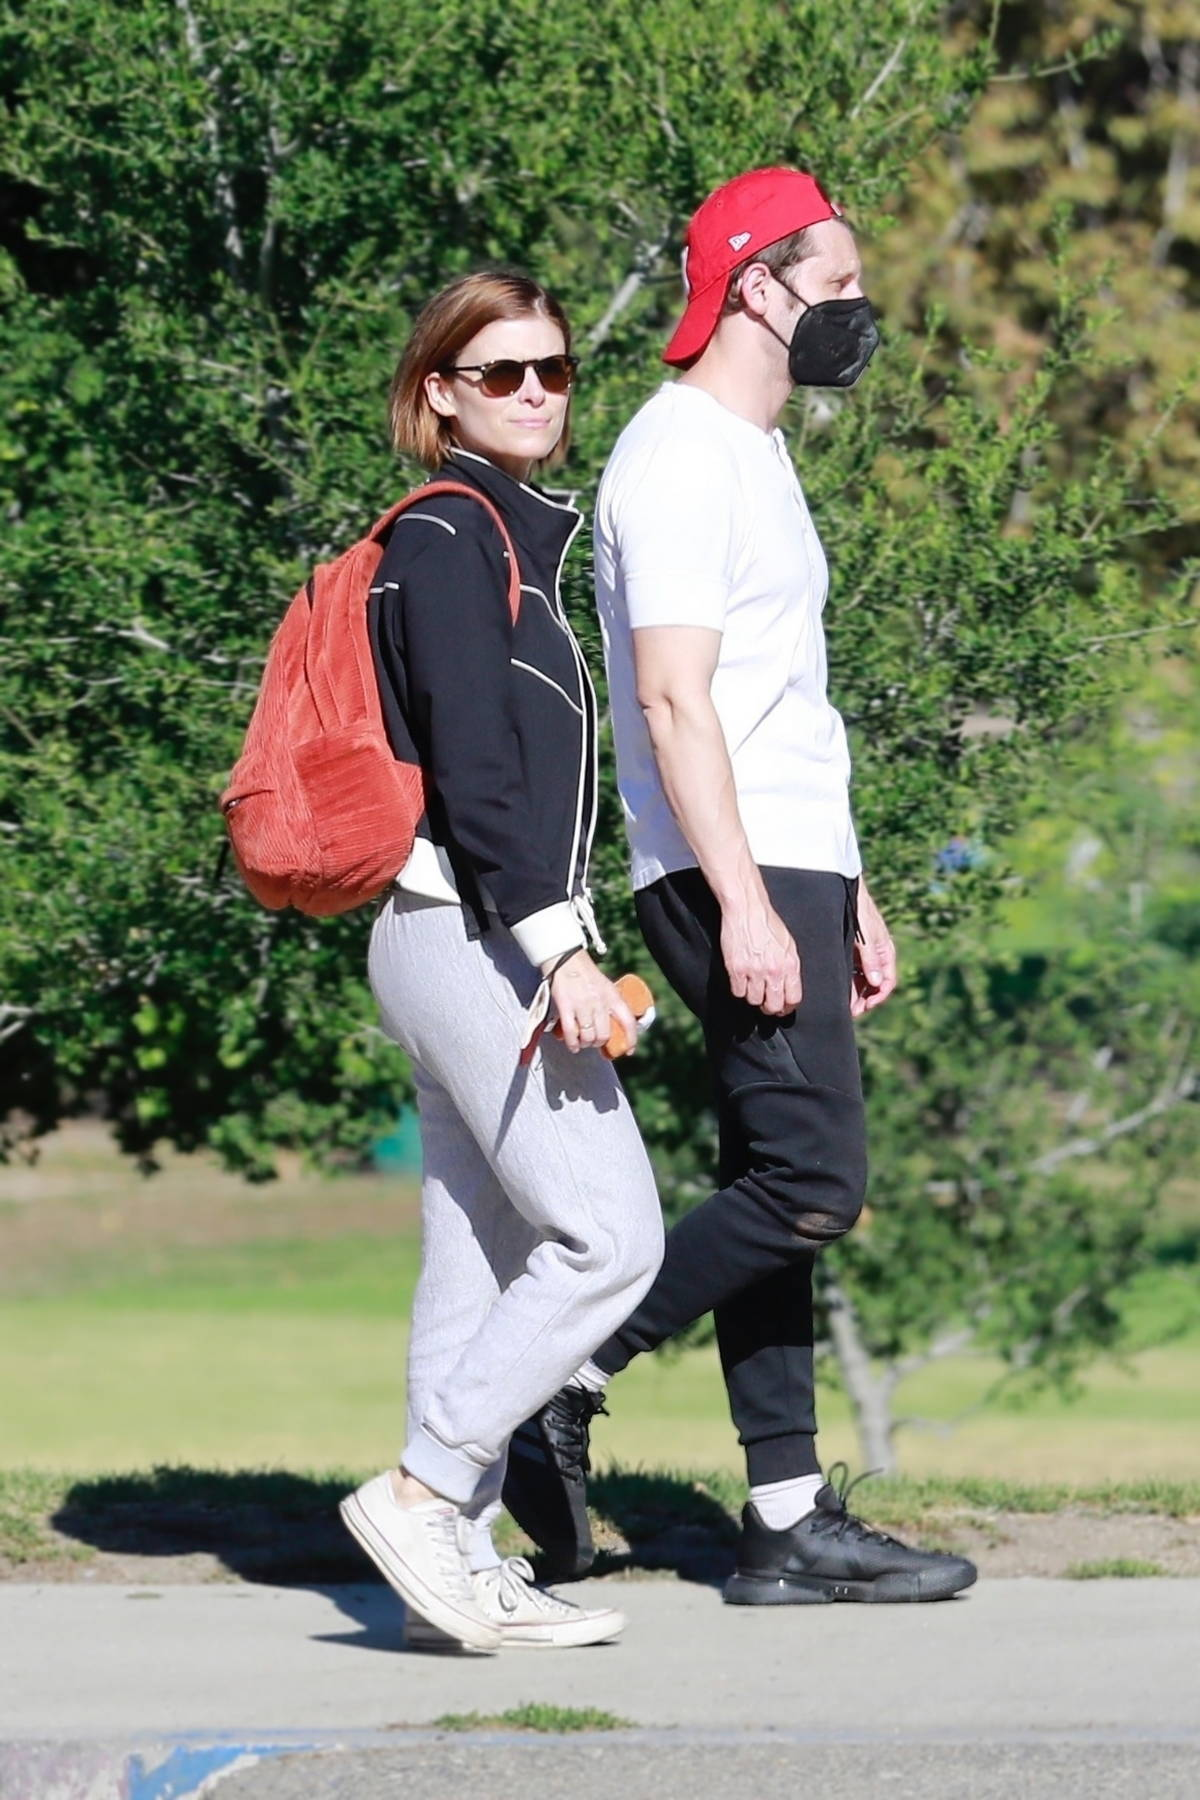 Kate Mara and Jamie Bell make one happy family while riding the carousel with their daughter in Los Feliz, California